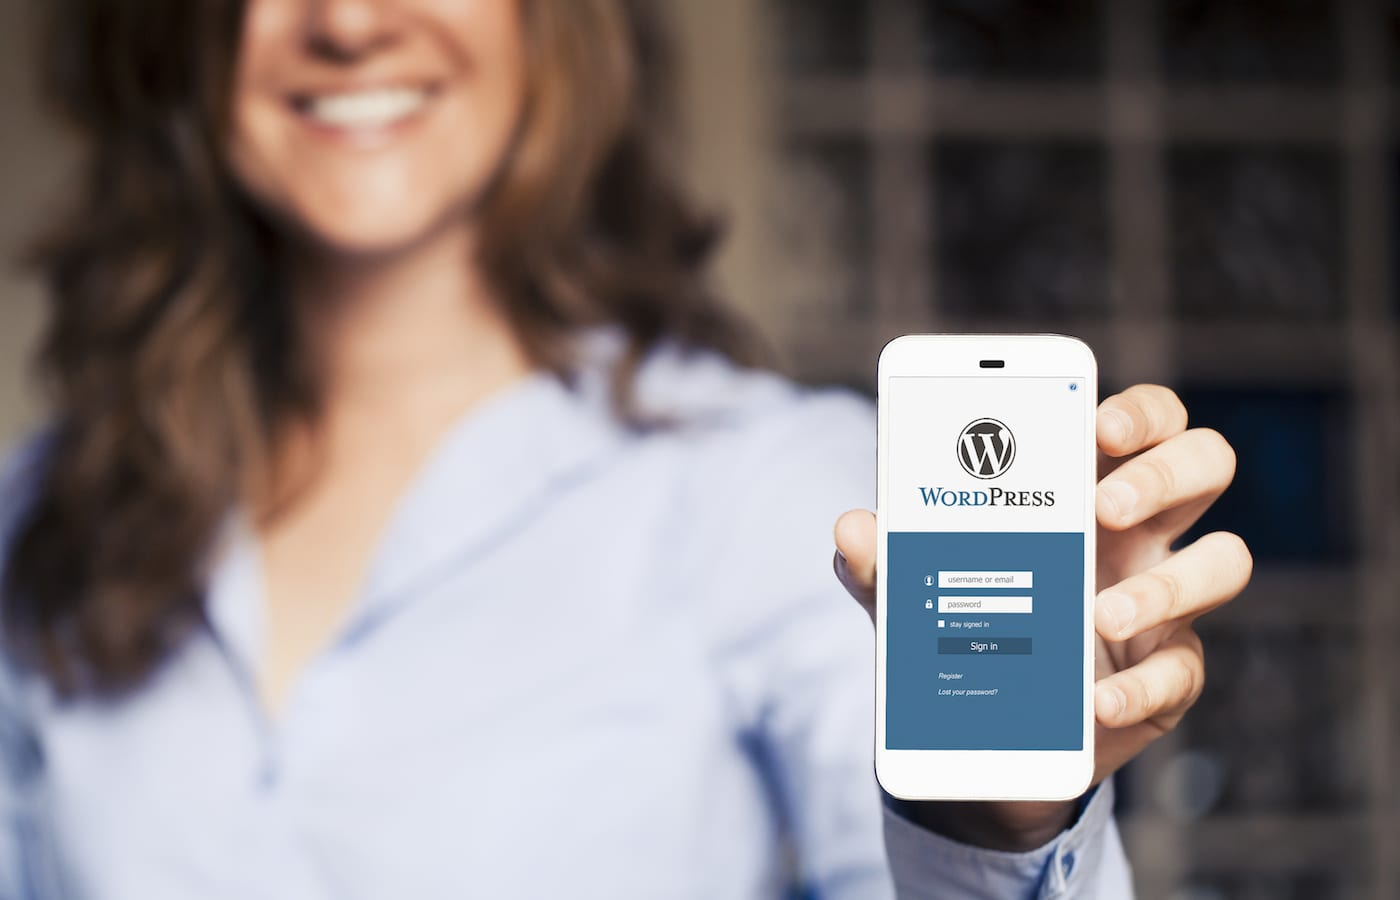 What Should You Look for in a Wordpress Theme